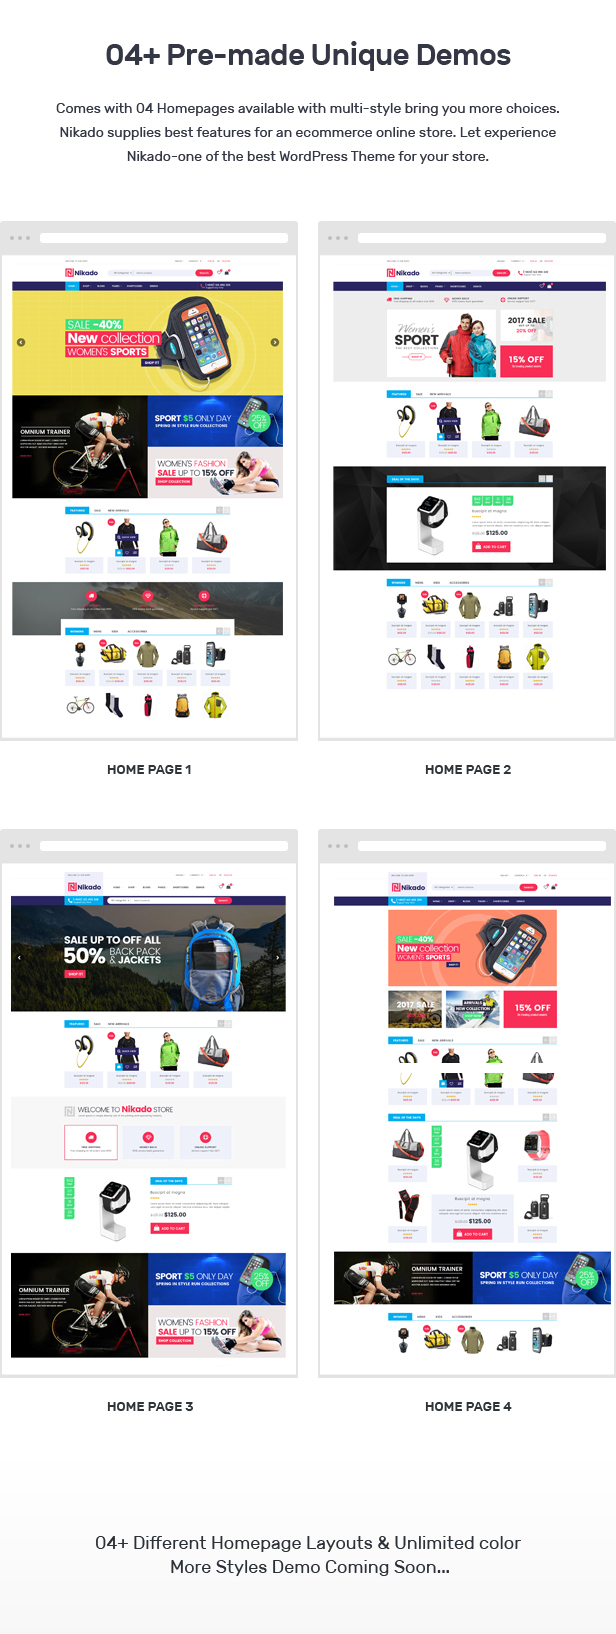 Woocommerce New Product Slider In Home Page